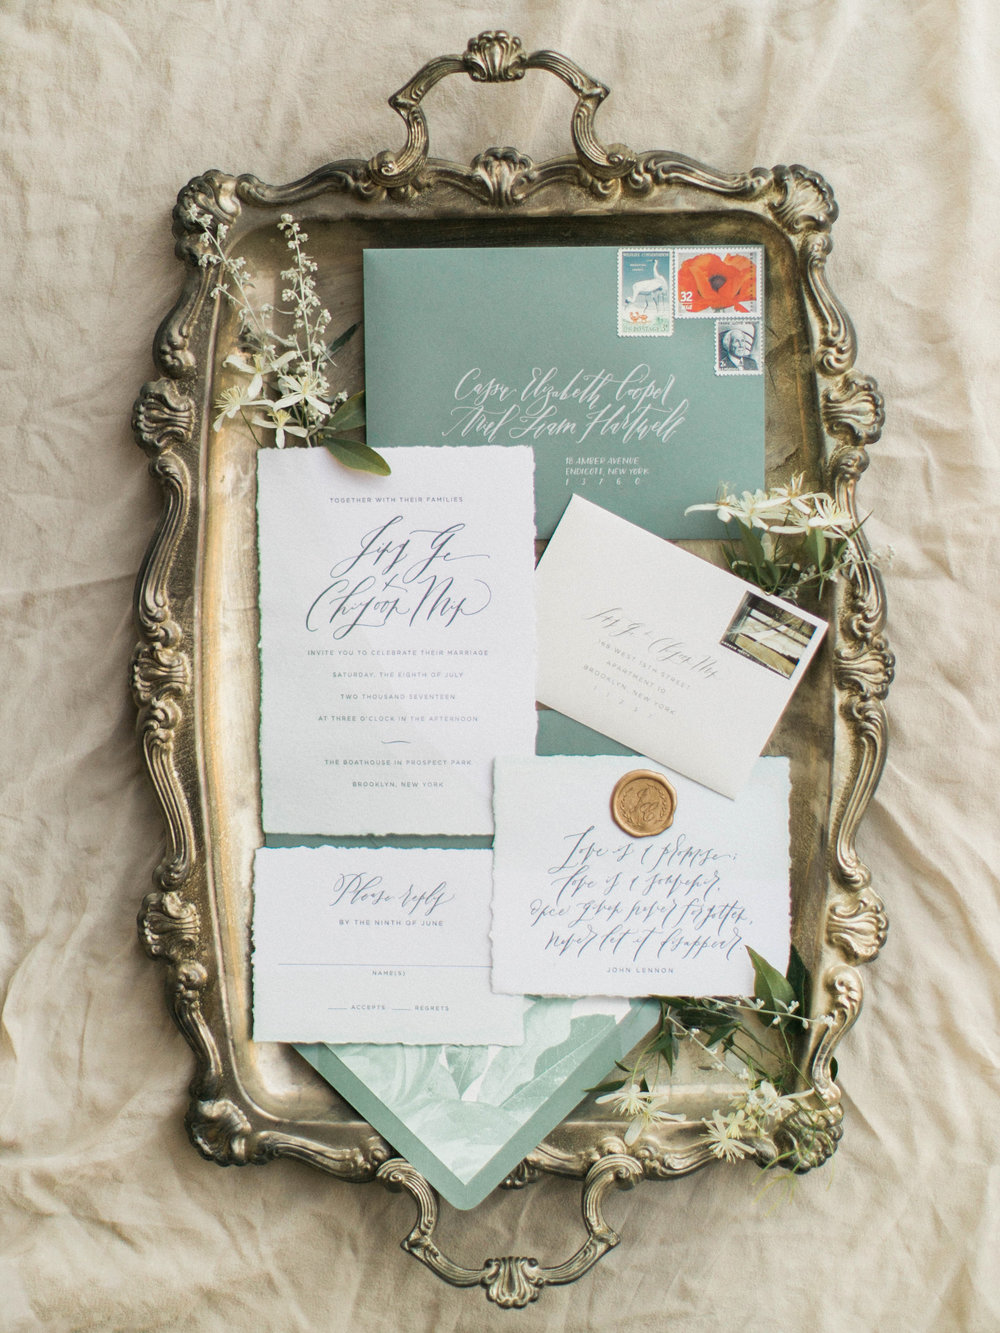 Deckled edge invitations and hand calligraphy addressing.  Invitations created by Regas Studio and Photo by Sophie Kaye Photography.